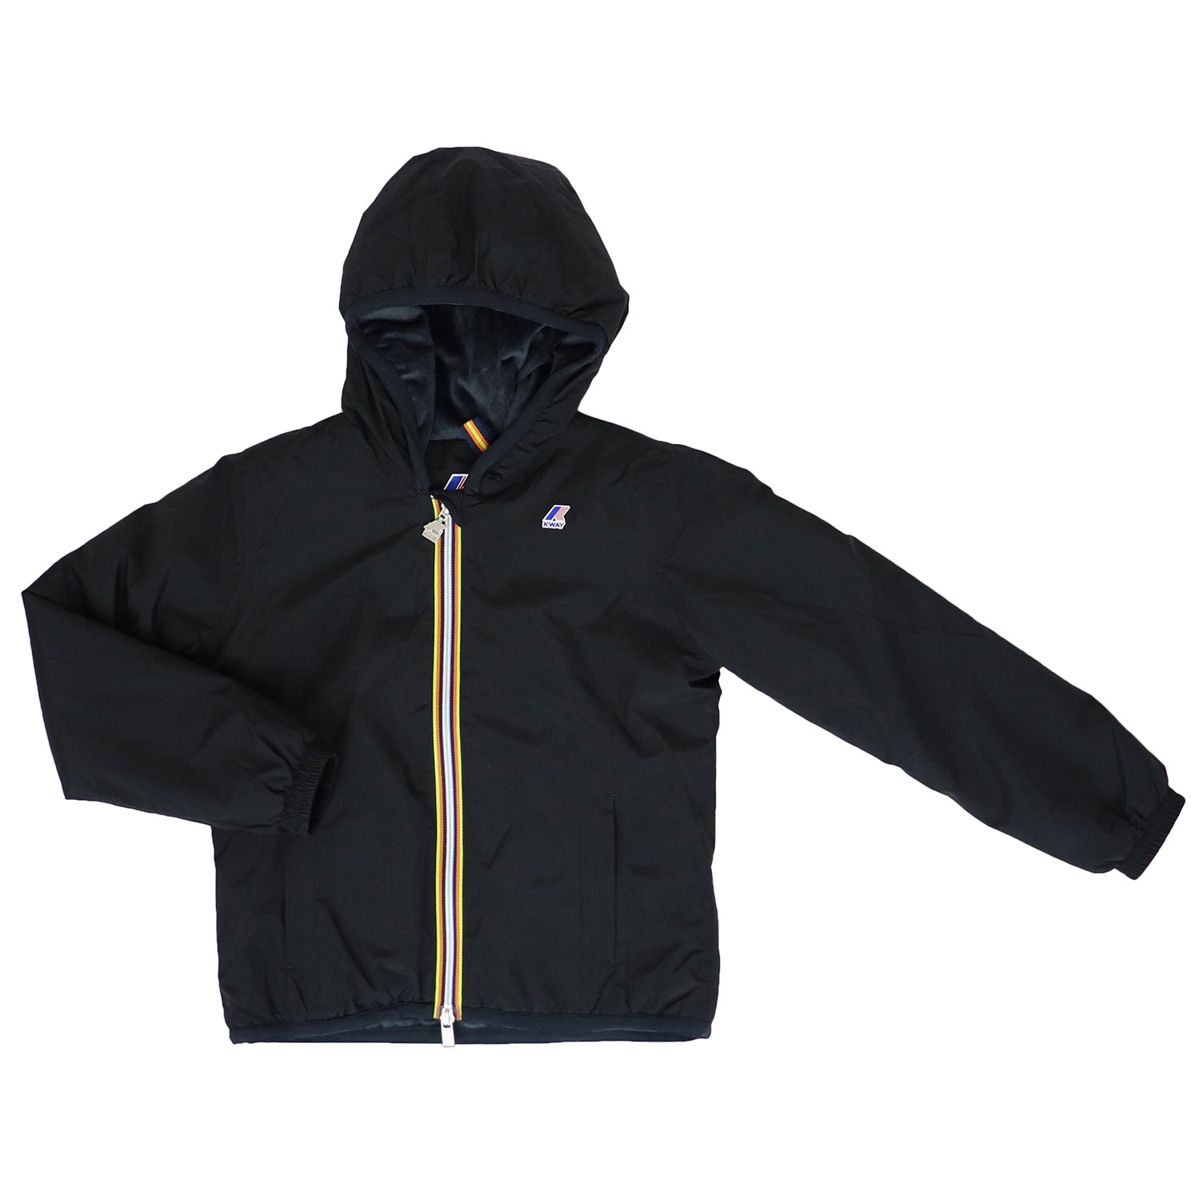 LILY MICRO RIPSTOP jacket with marmot effect inside Black K-Way